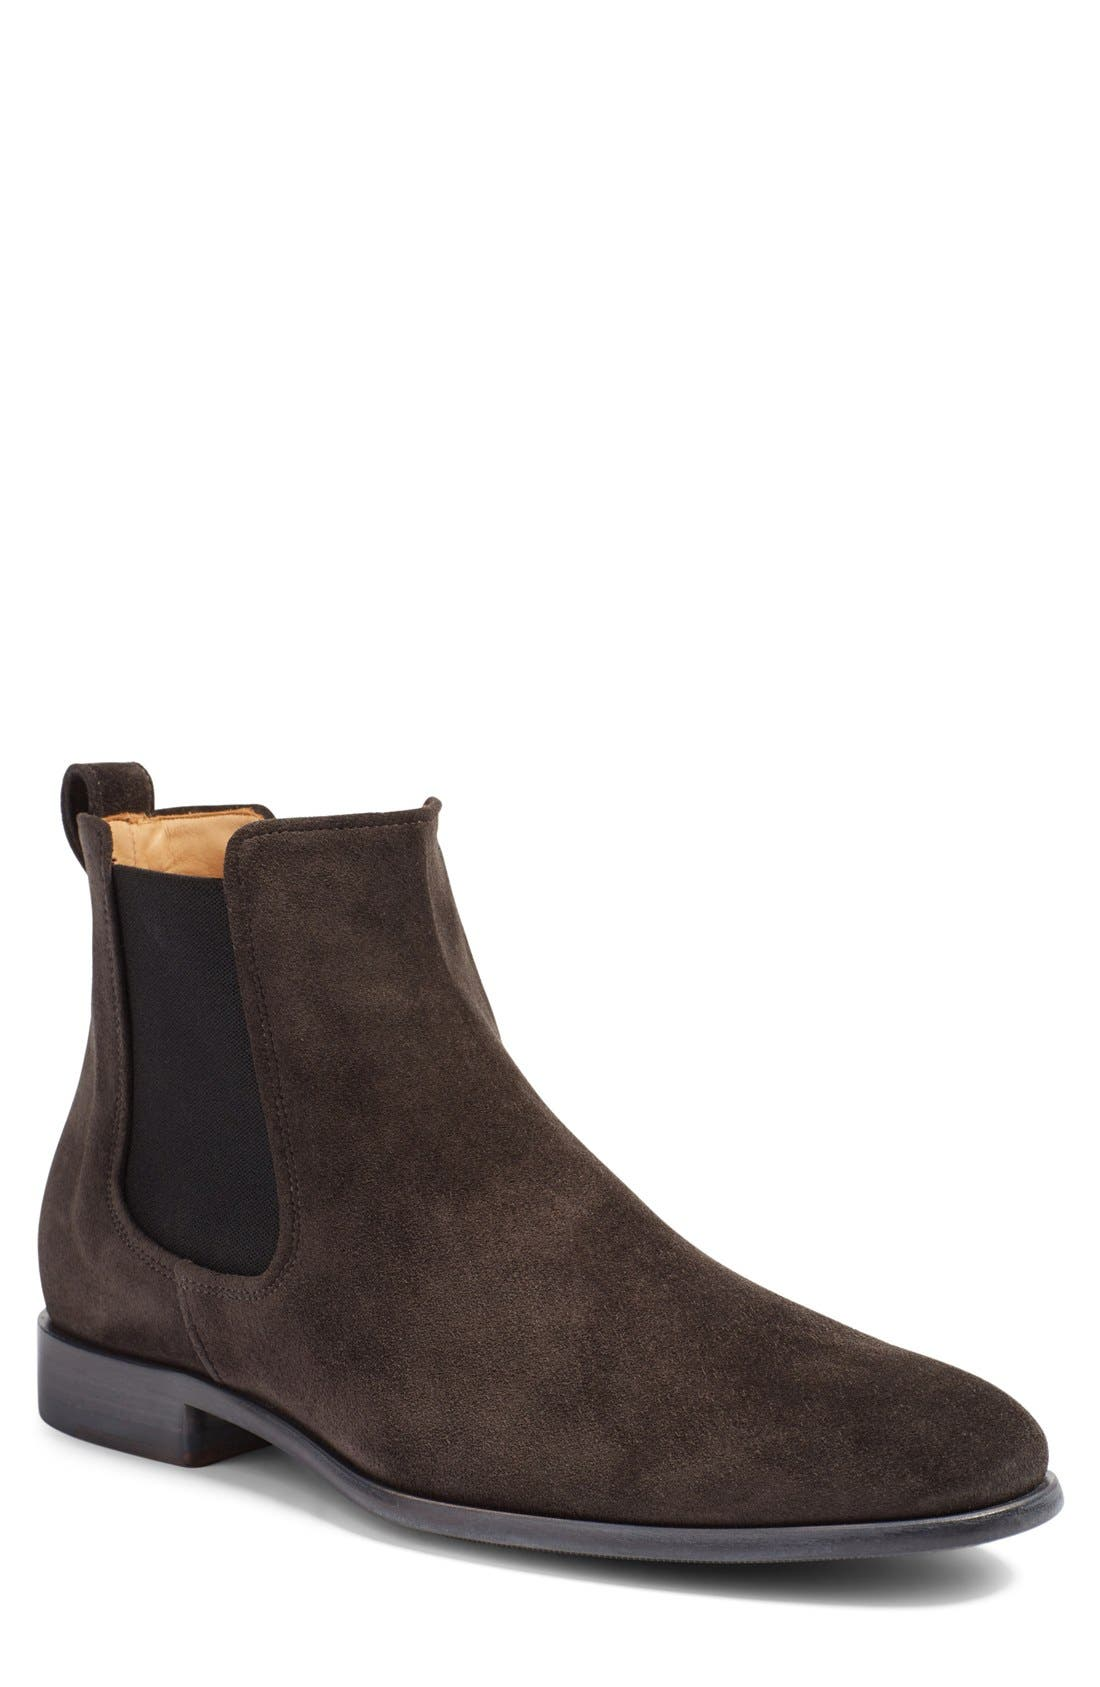 Arthur Chelsea Boot,                             Main thumbnail 2, color,